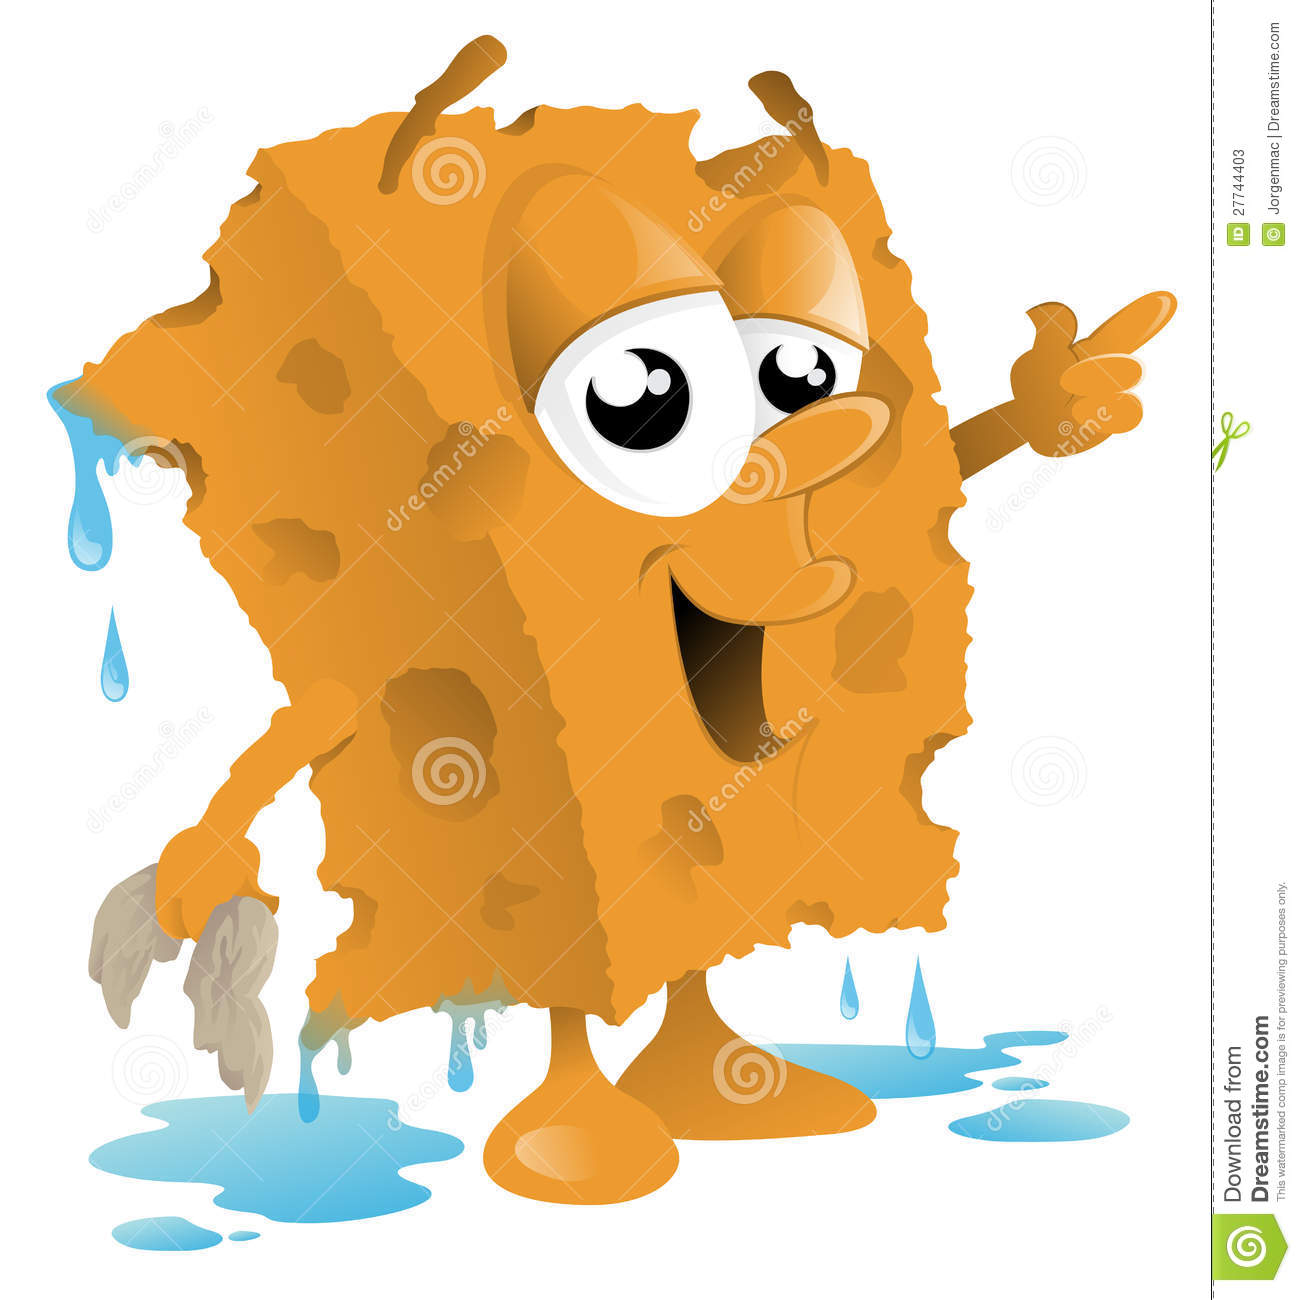 Vector illustration of a cute sponge character all ready to wash a car